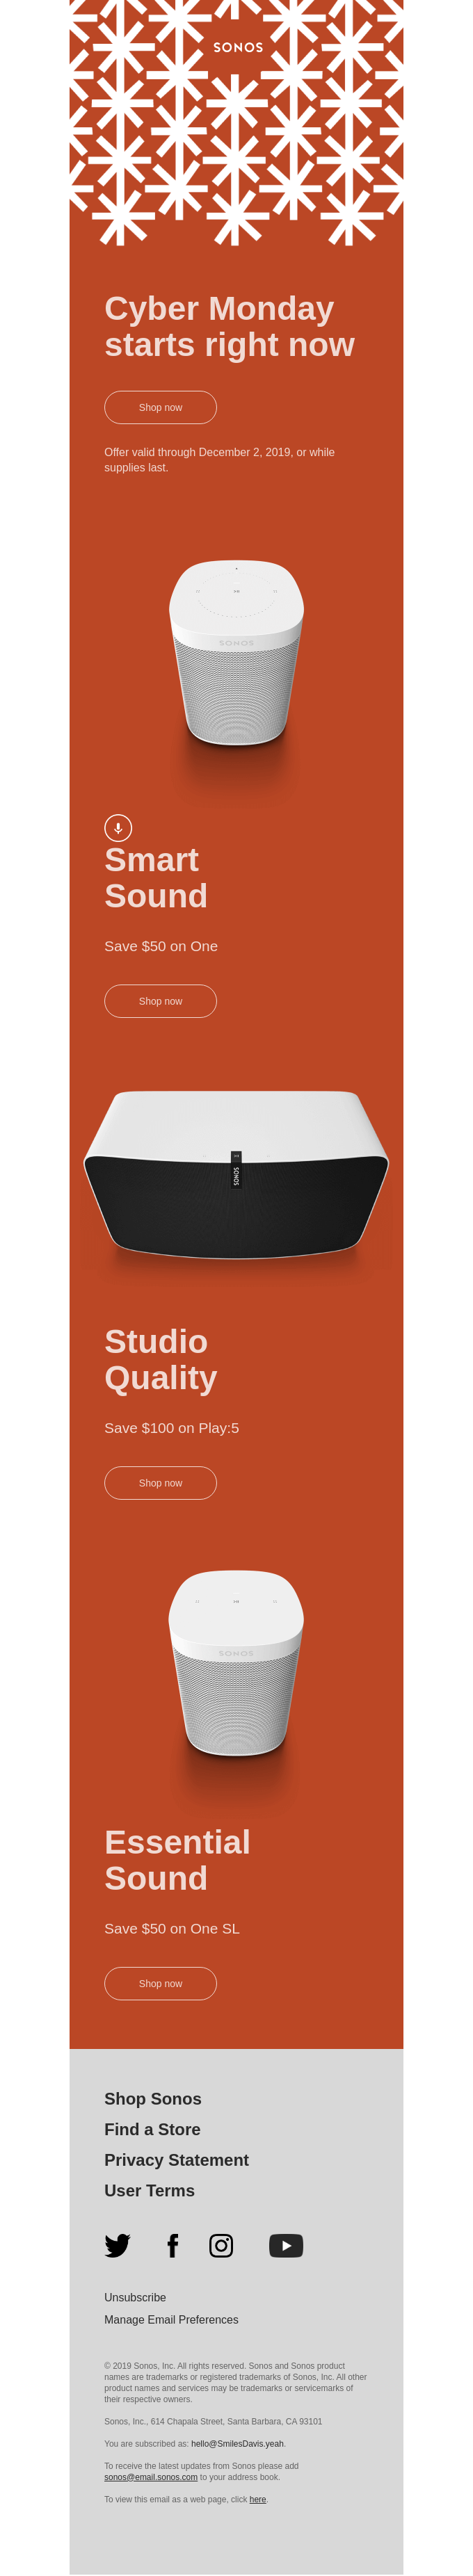 Today only: Save $100 on great sound